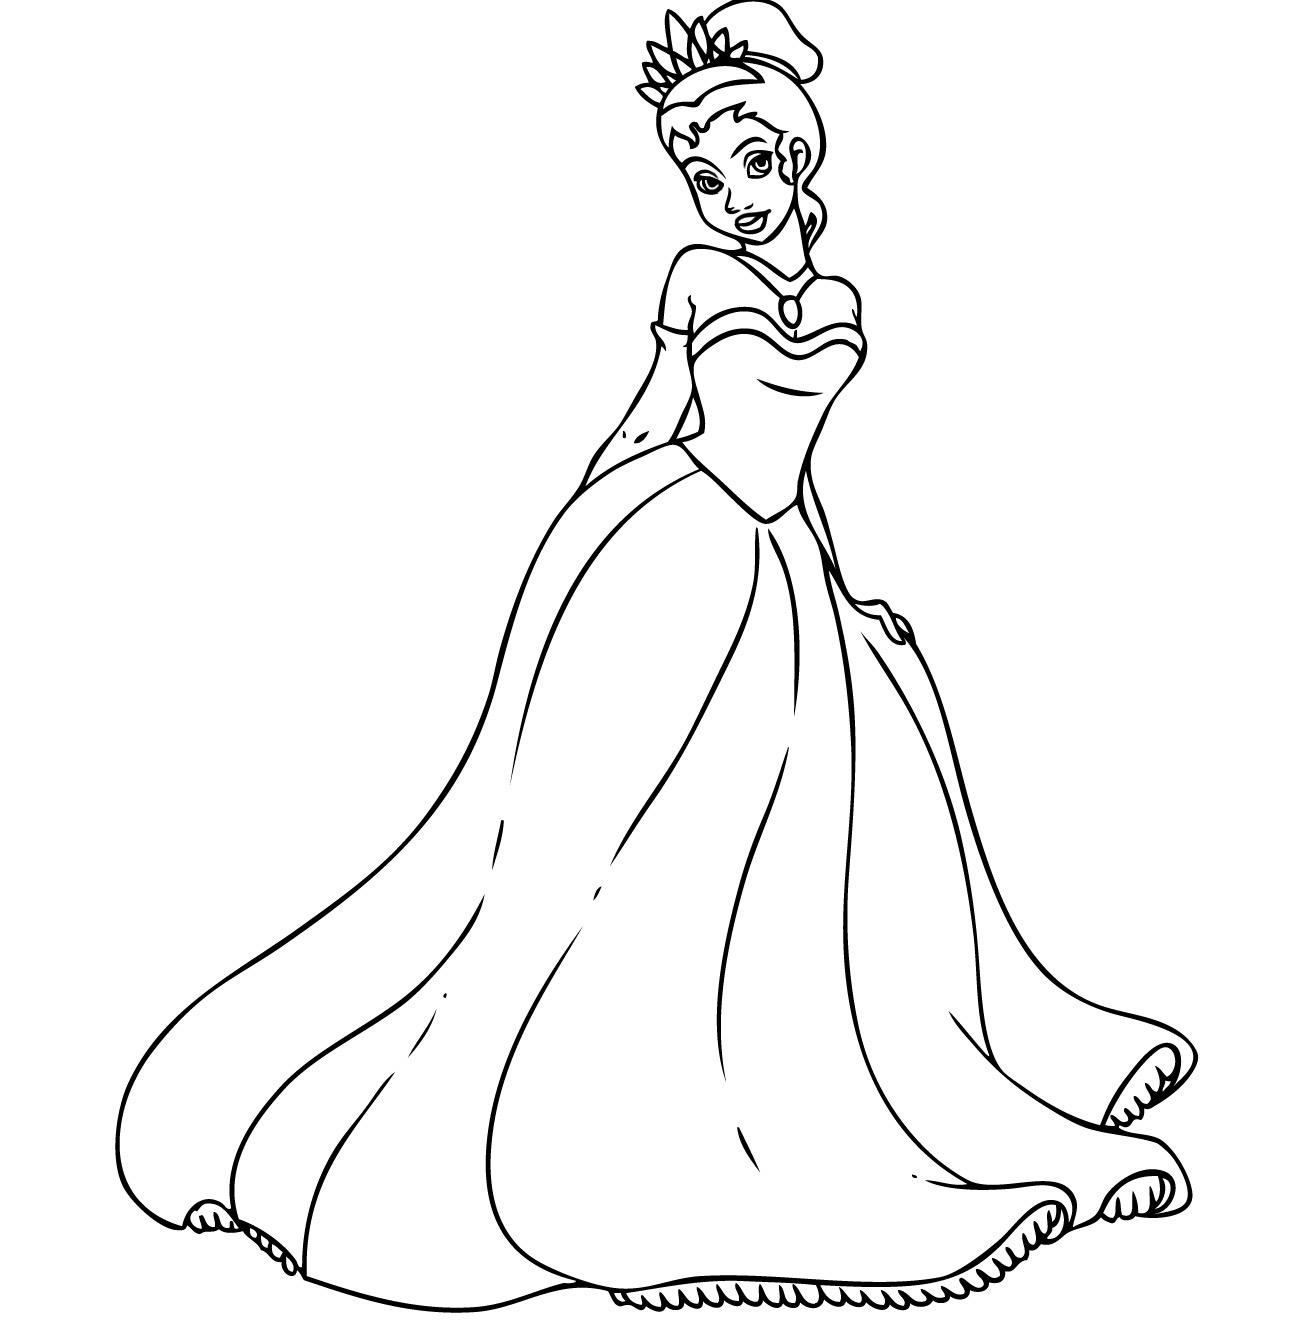 Tiana Coloring Pages Mesmerizing Free Printable Princess Tiana Coloring Pages For Kids Decorating Inspiration